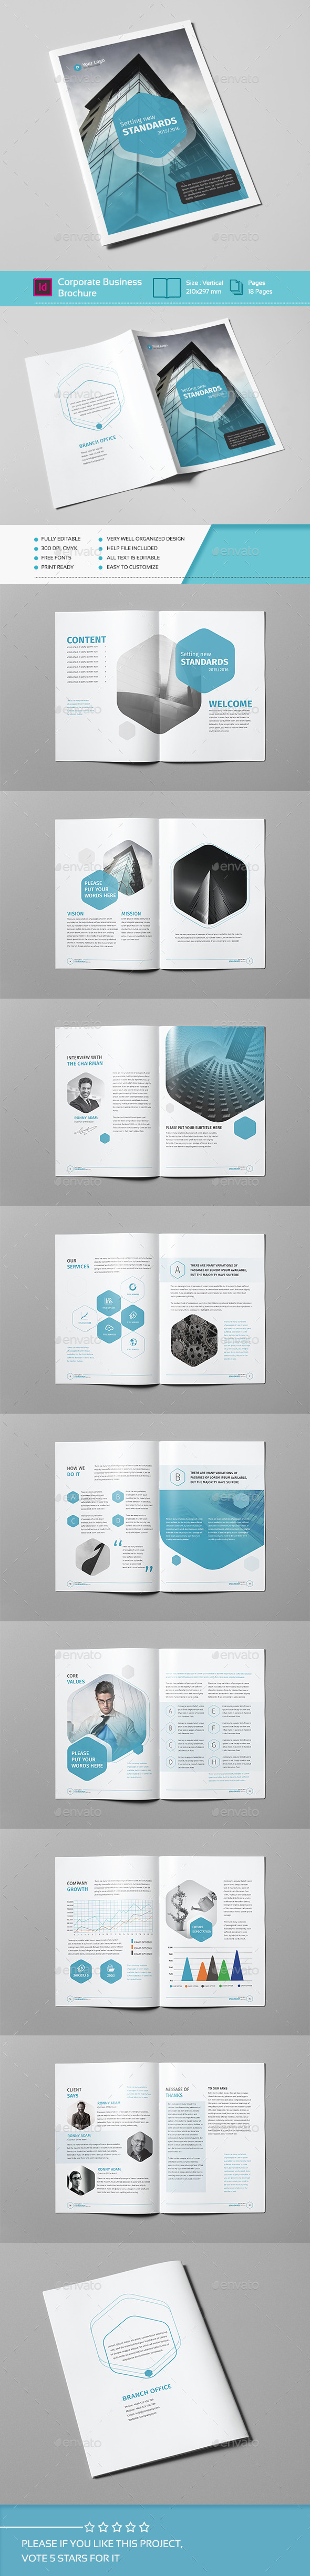 Corporate Business Brochure 18 Pages A4 - Corporate Brochures